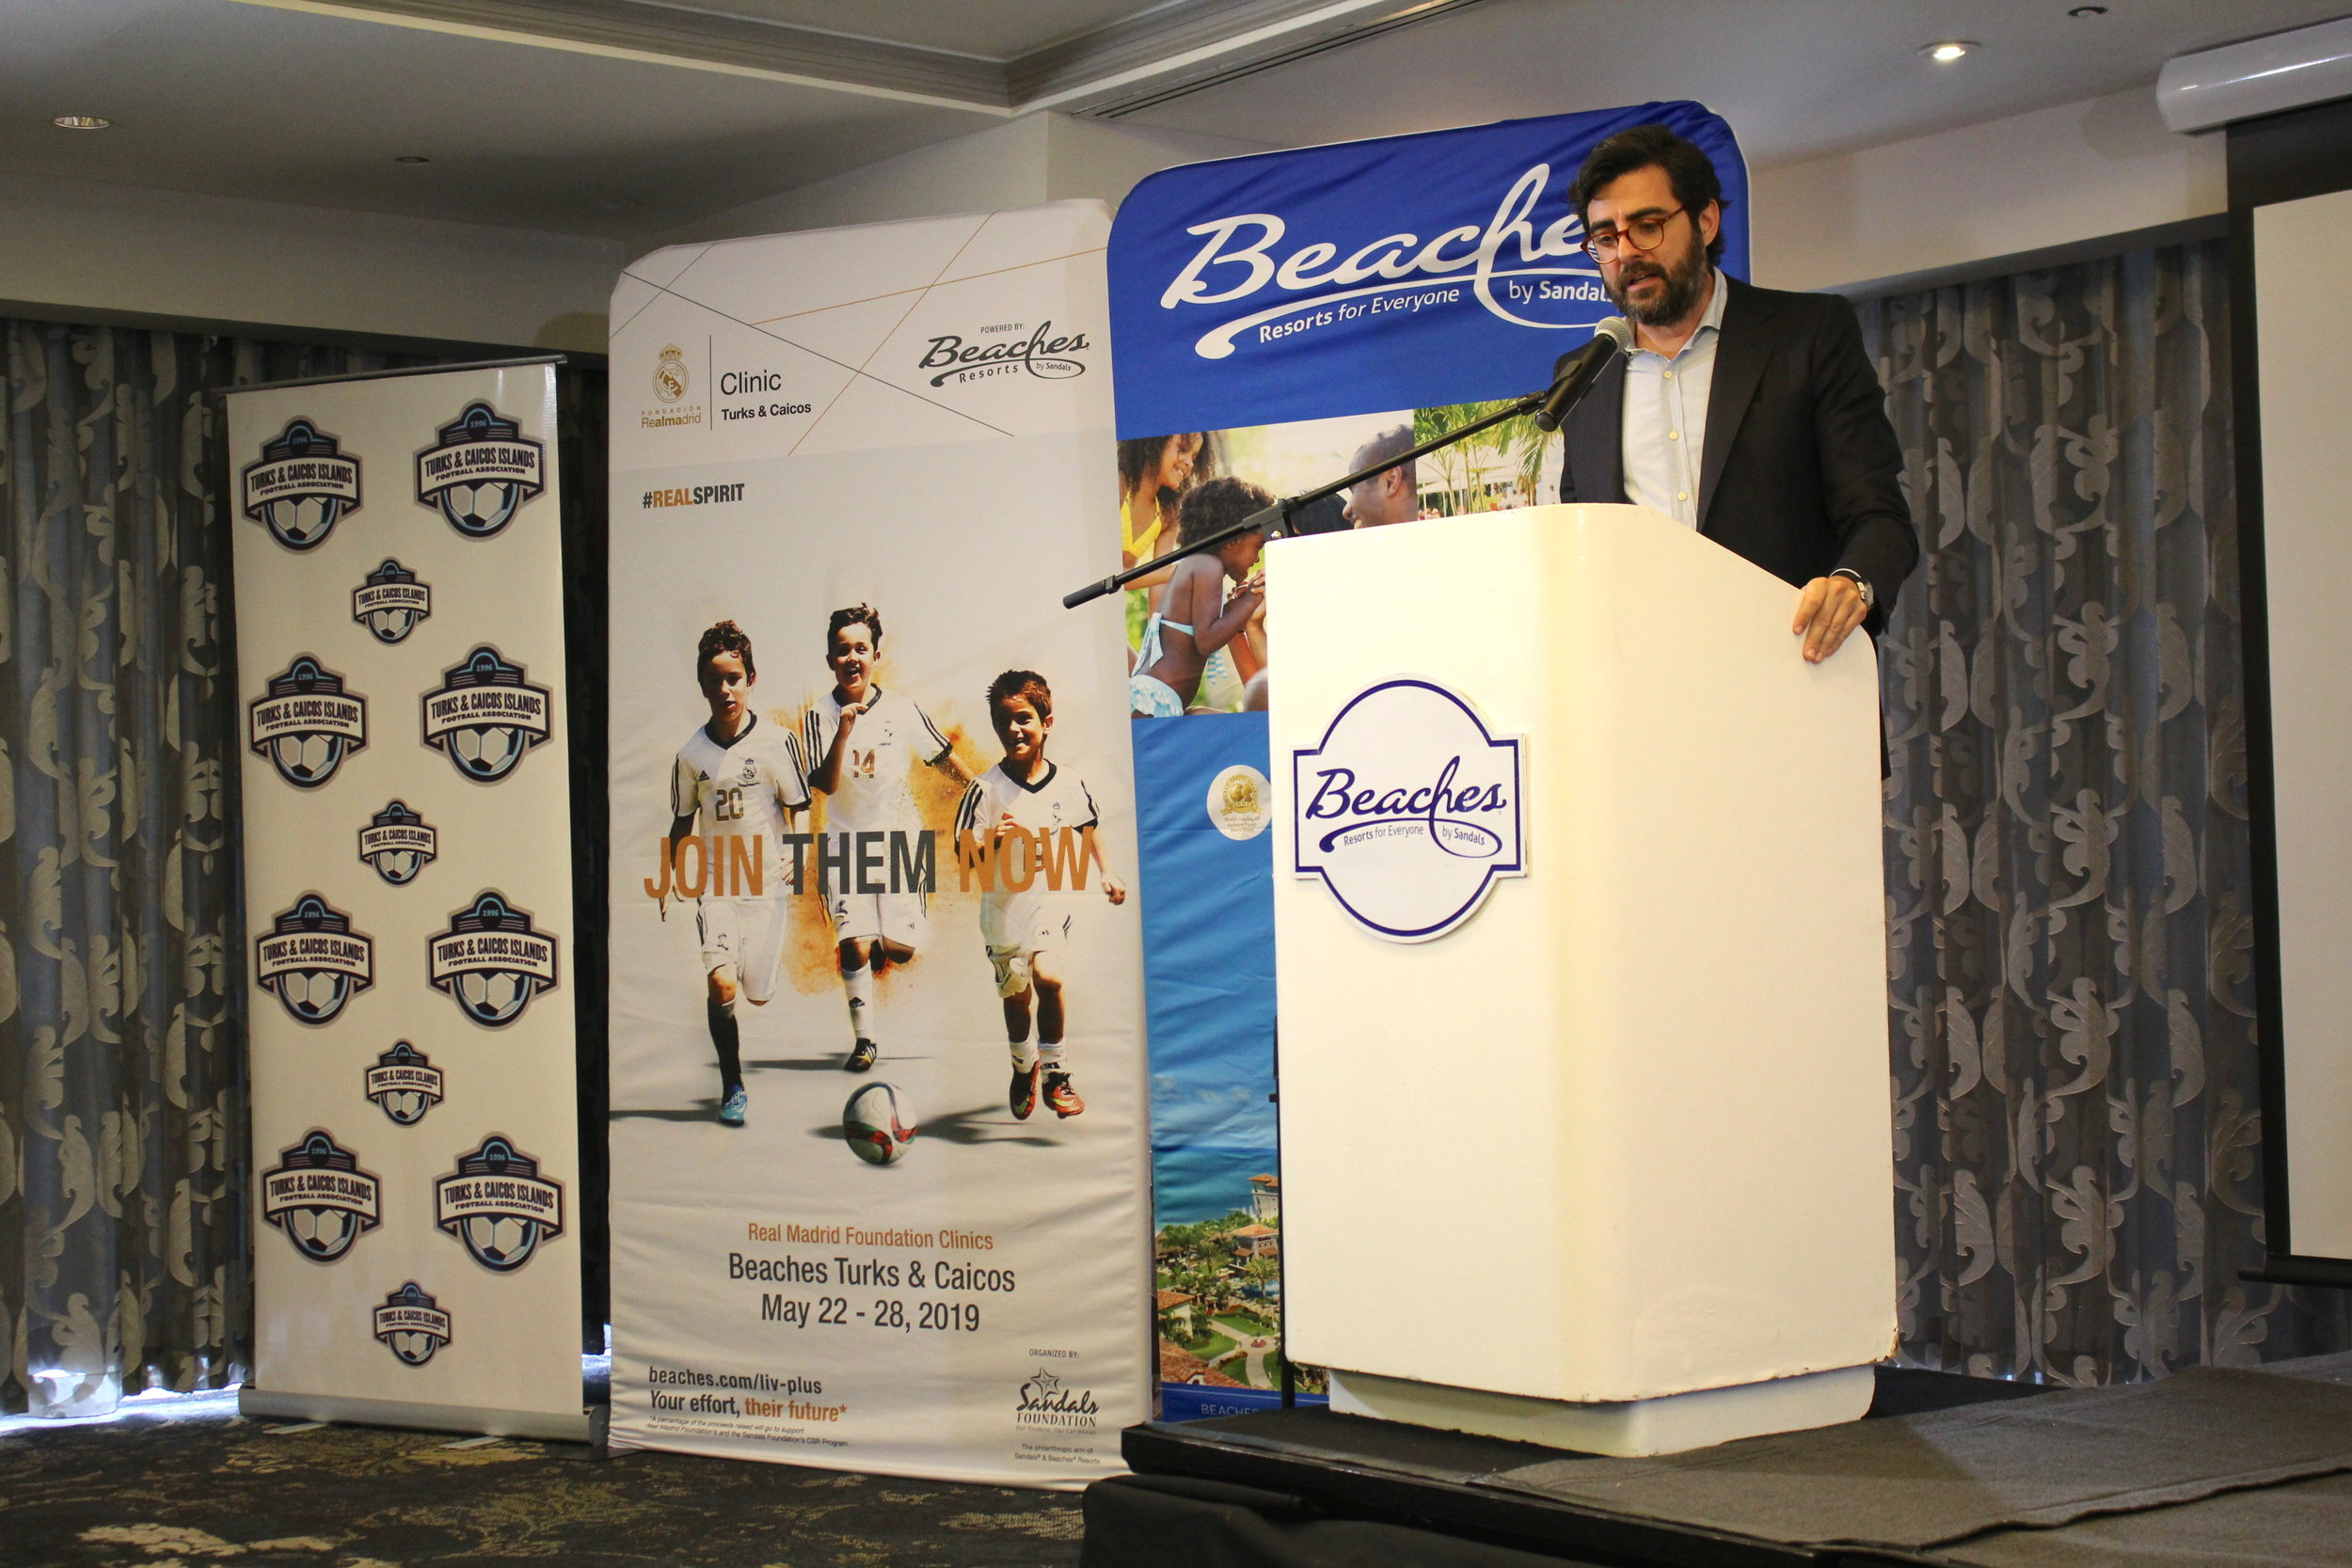 Campus and Clinics Area Manager of Real madrid Foundation- Andres Muntaner Borrajo